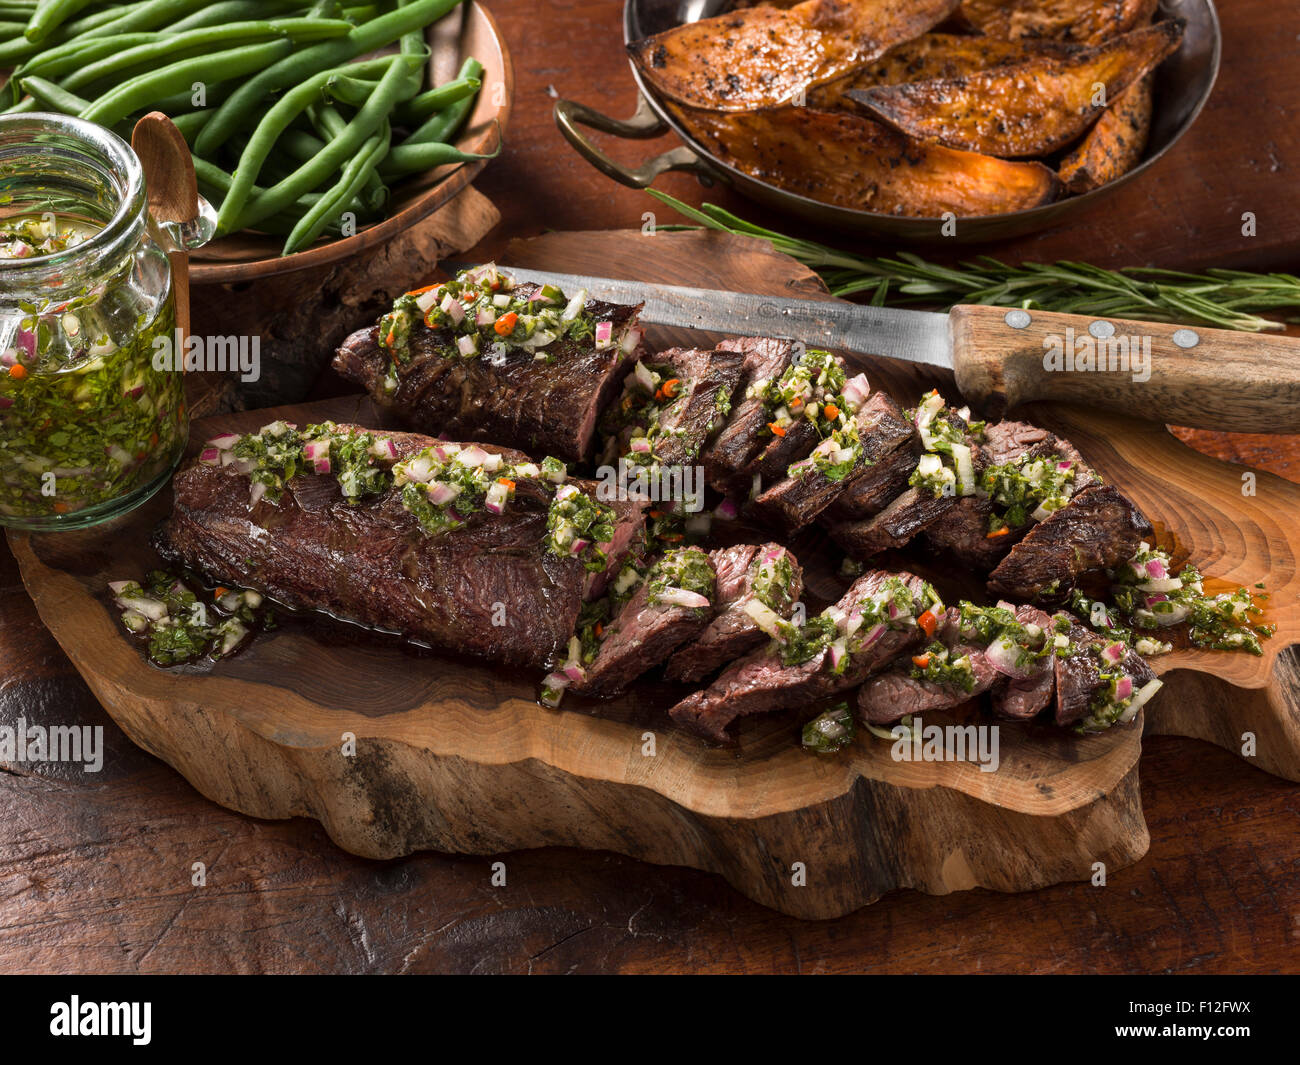 Onglet beef with chimichurri sauce - Stock Image